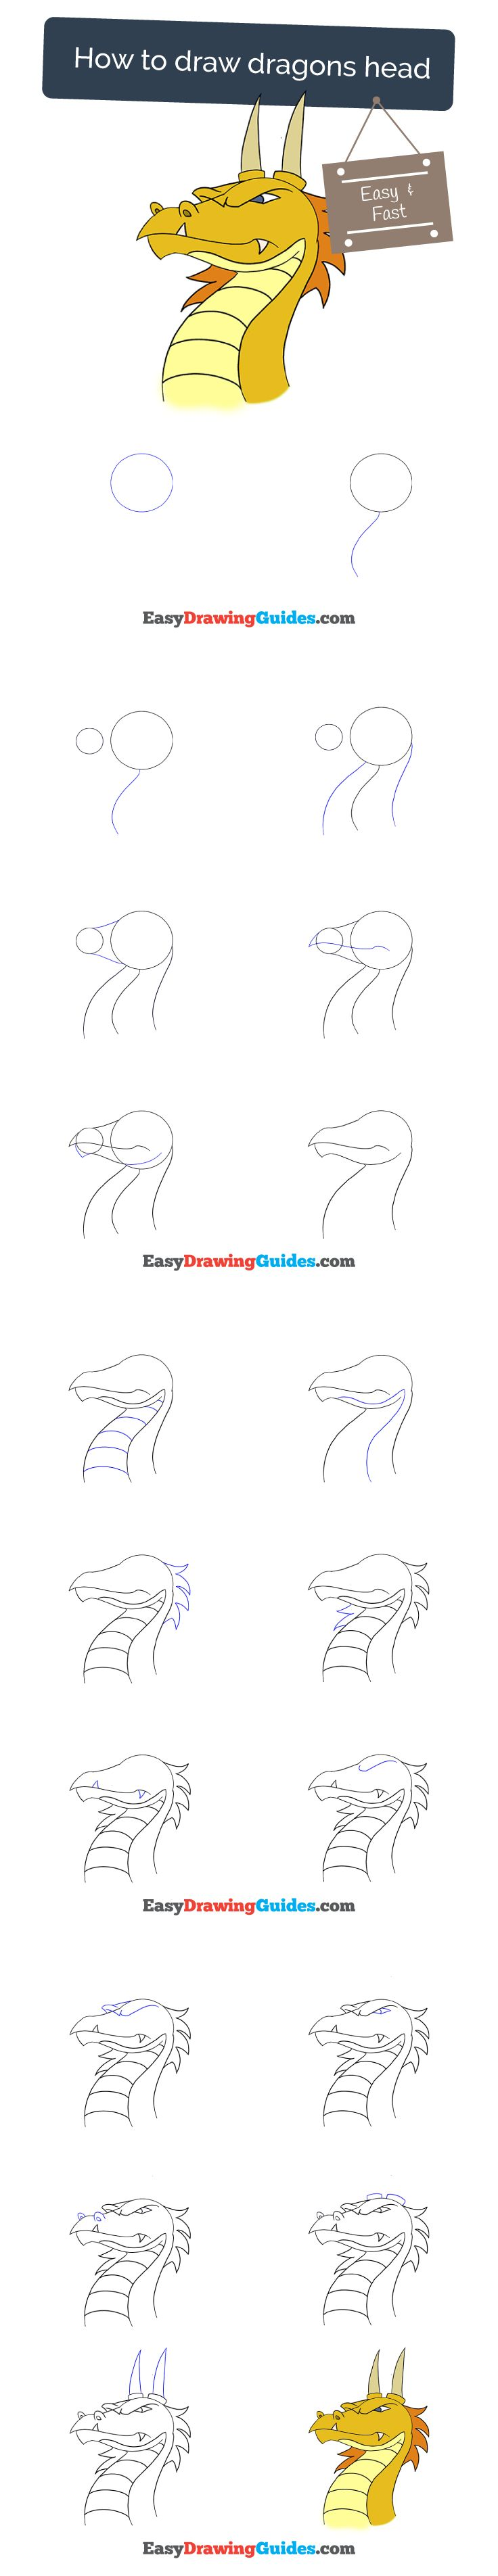 best 25 easy to draw dragons ideas on pinterest easy pencil